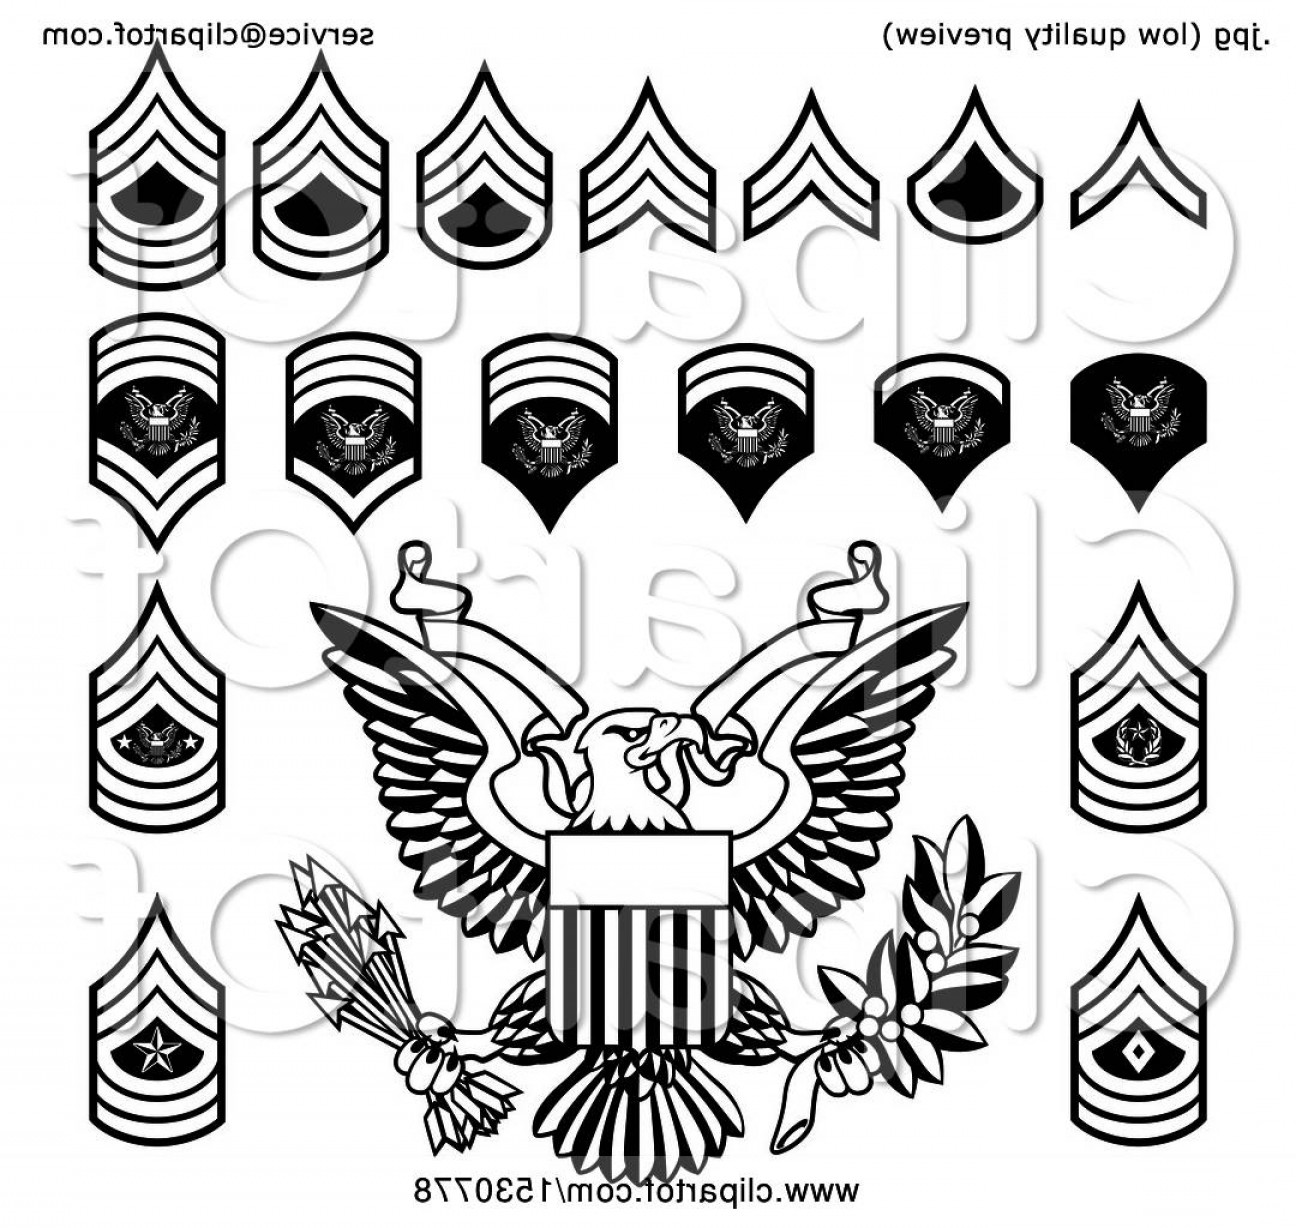 Army rank patches clipart black and whitw graphic transparent download Black And White American Military Army Officer Rank Insignia Badges ... graphic transparent download